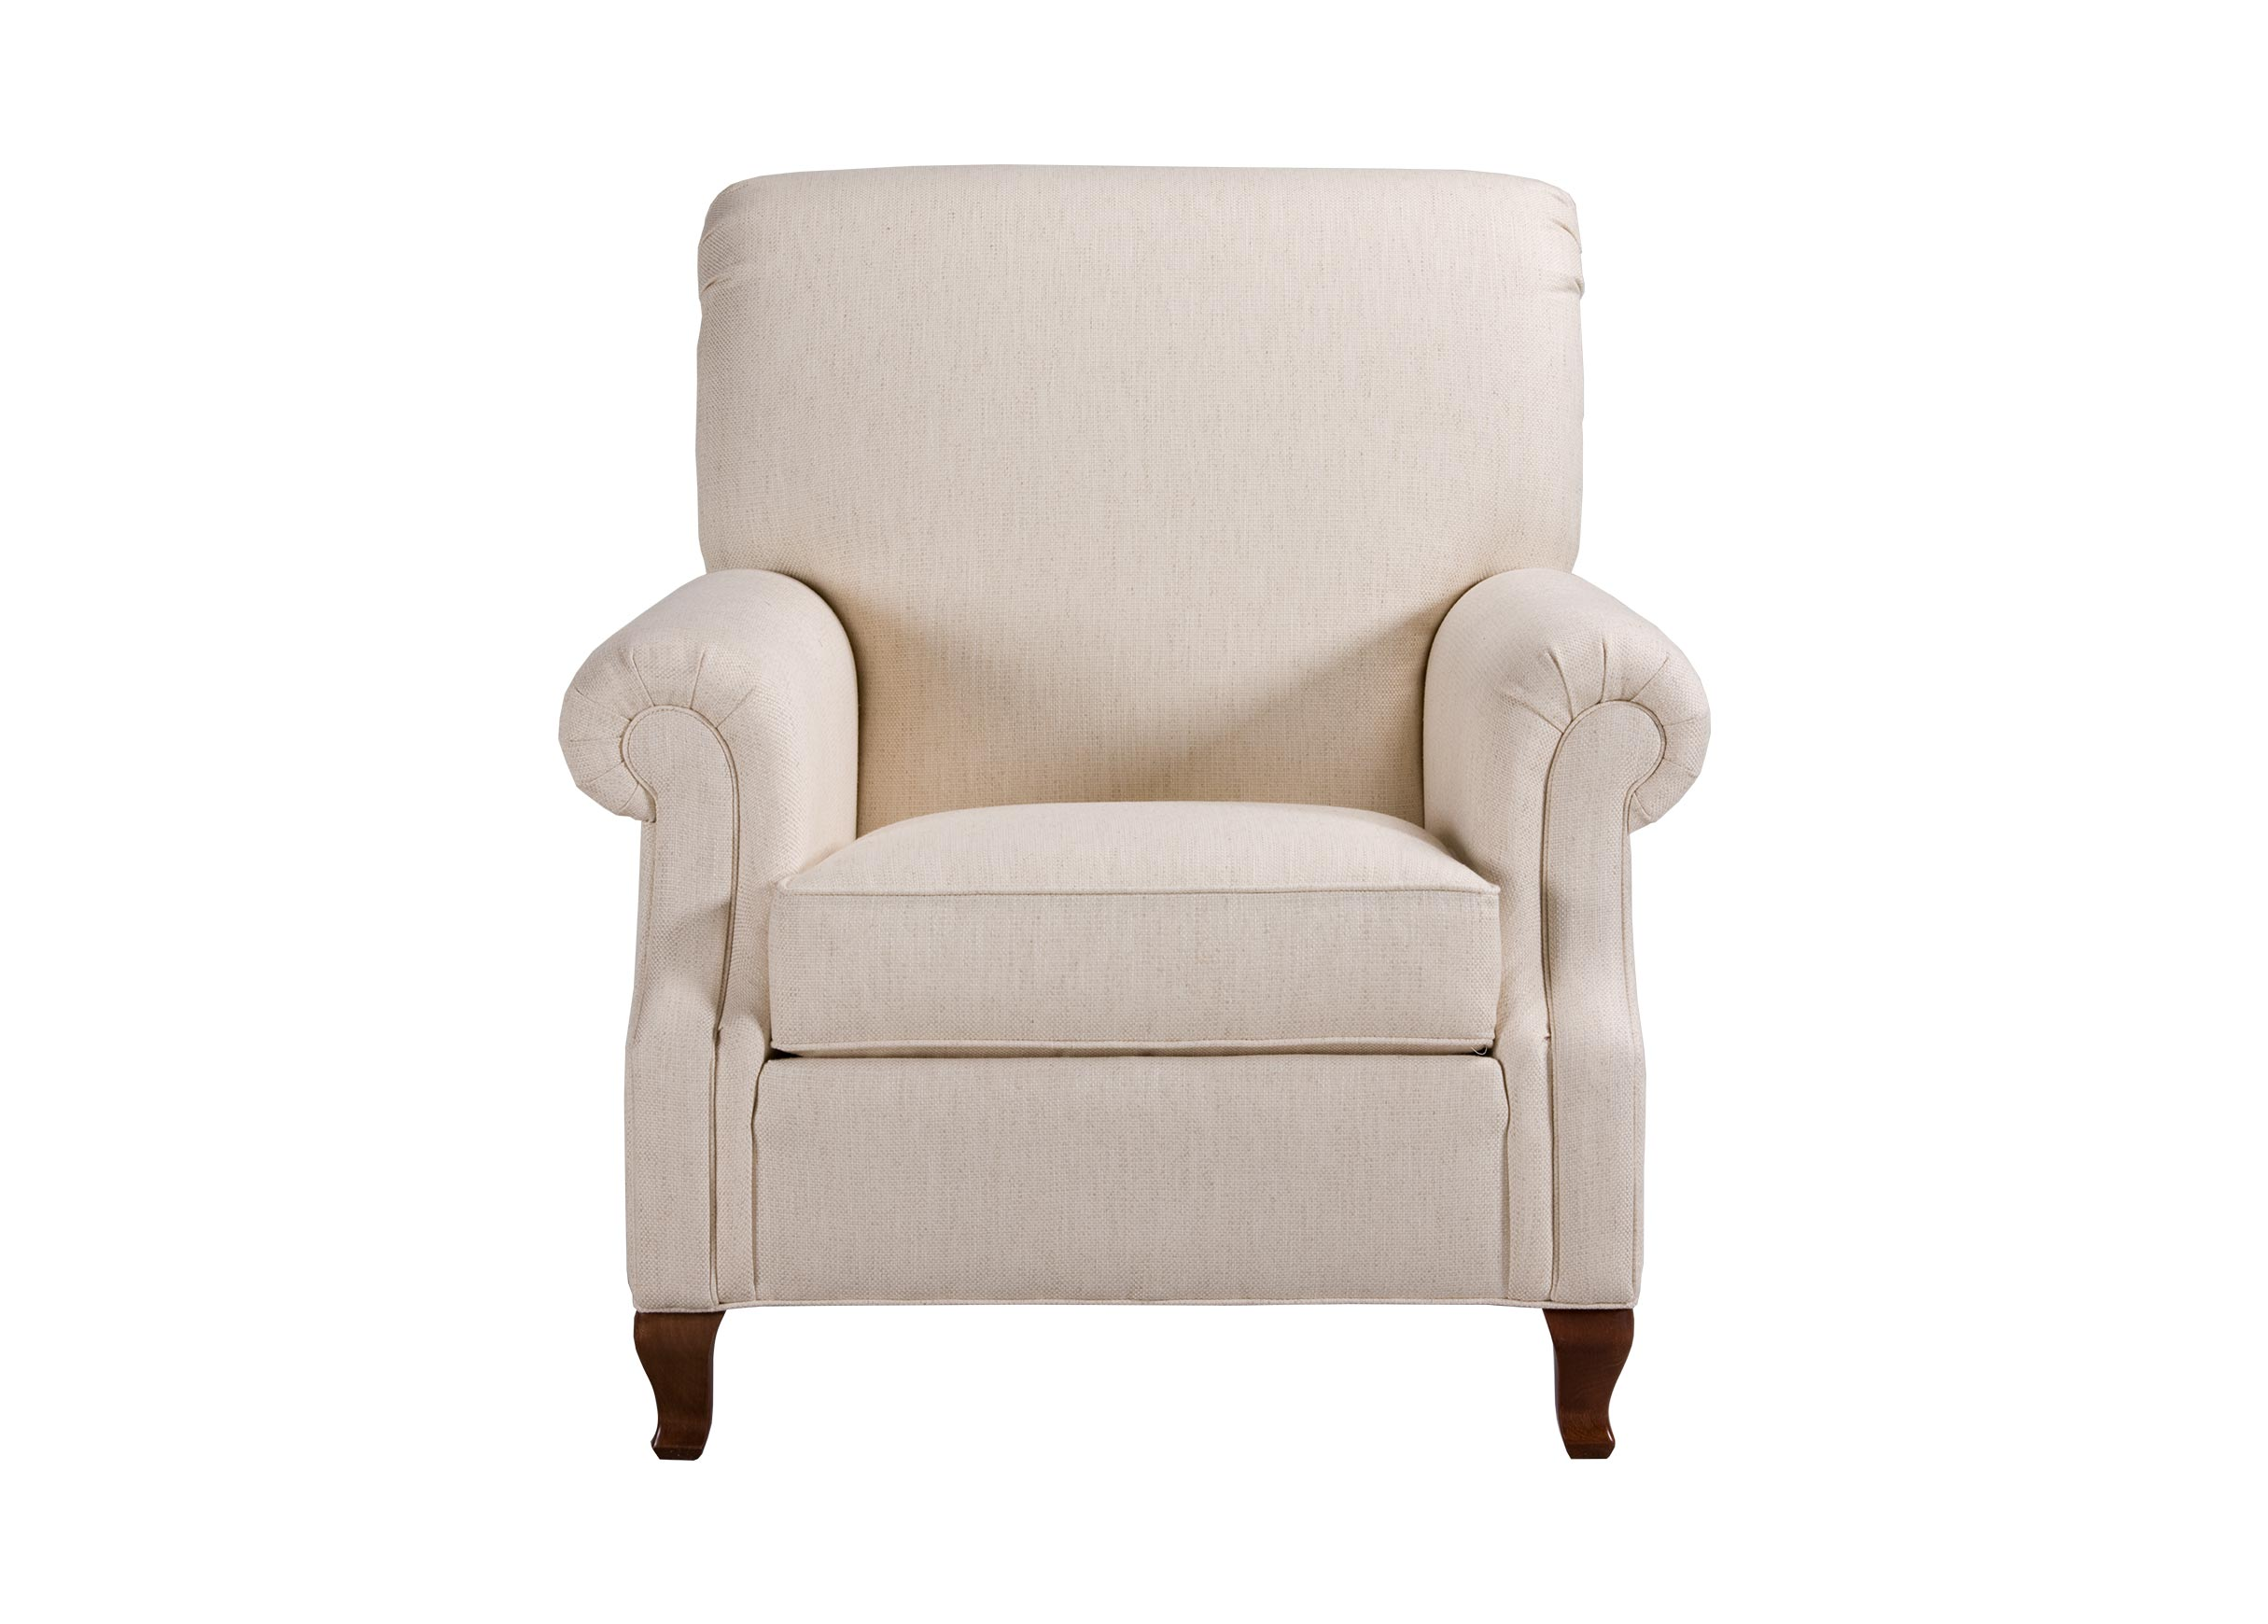 Avery Chair  Chairs  Chaises  Ethan Allen